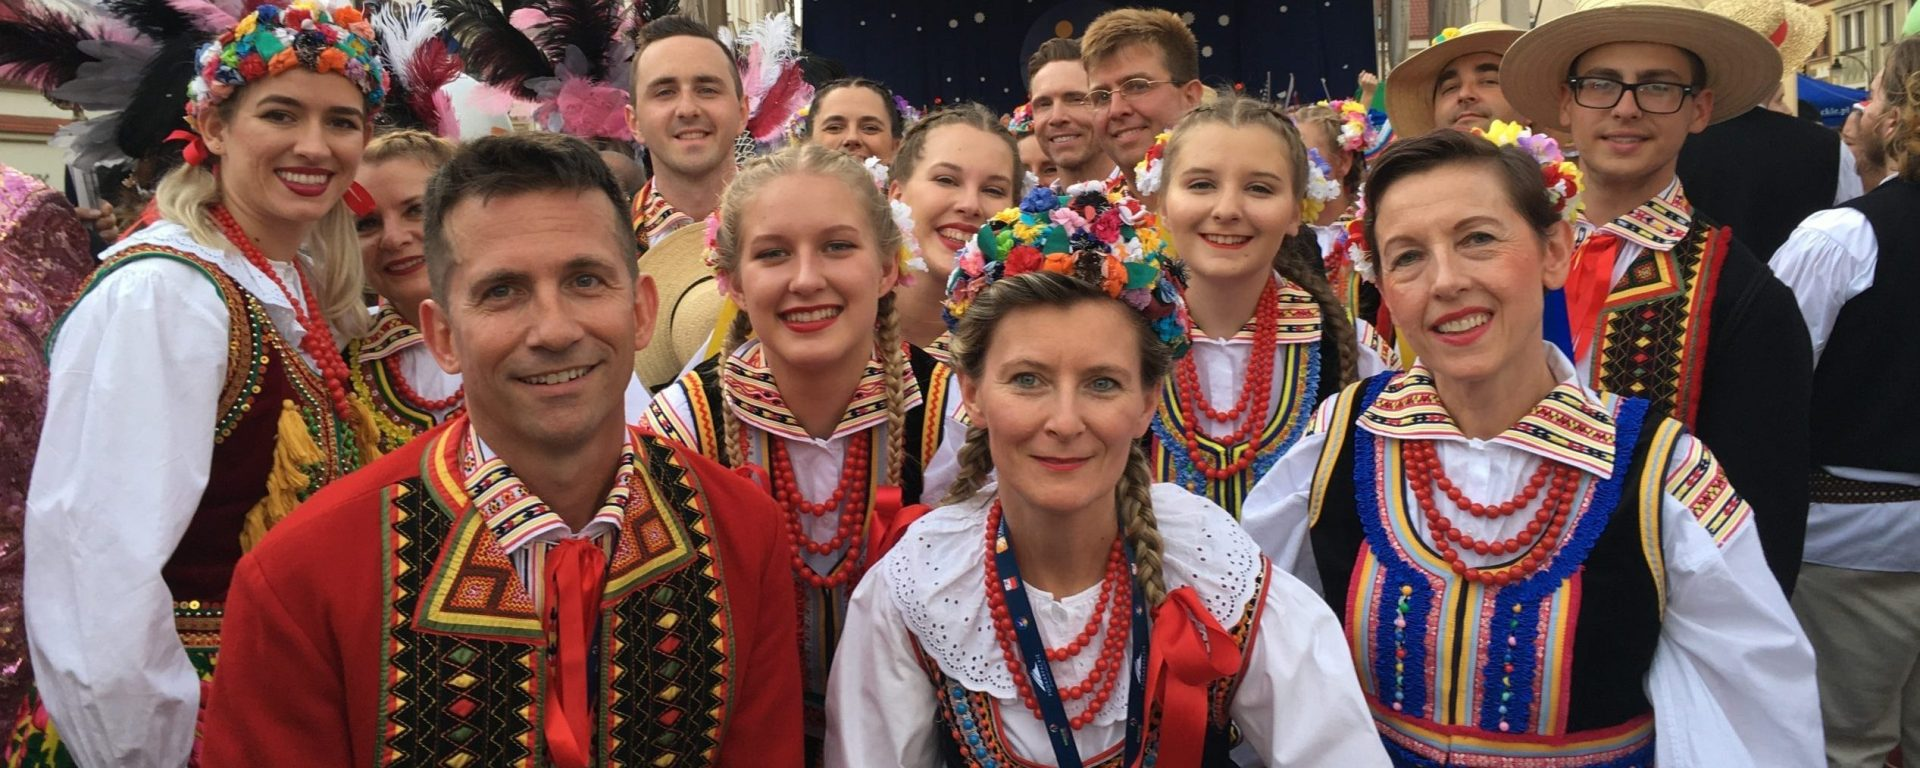 Large group of men and women dressed in traditional Polish clothing standing together at an outdoor Polish folk festival in Poland.